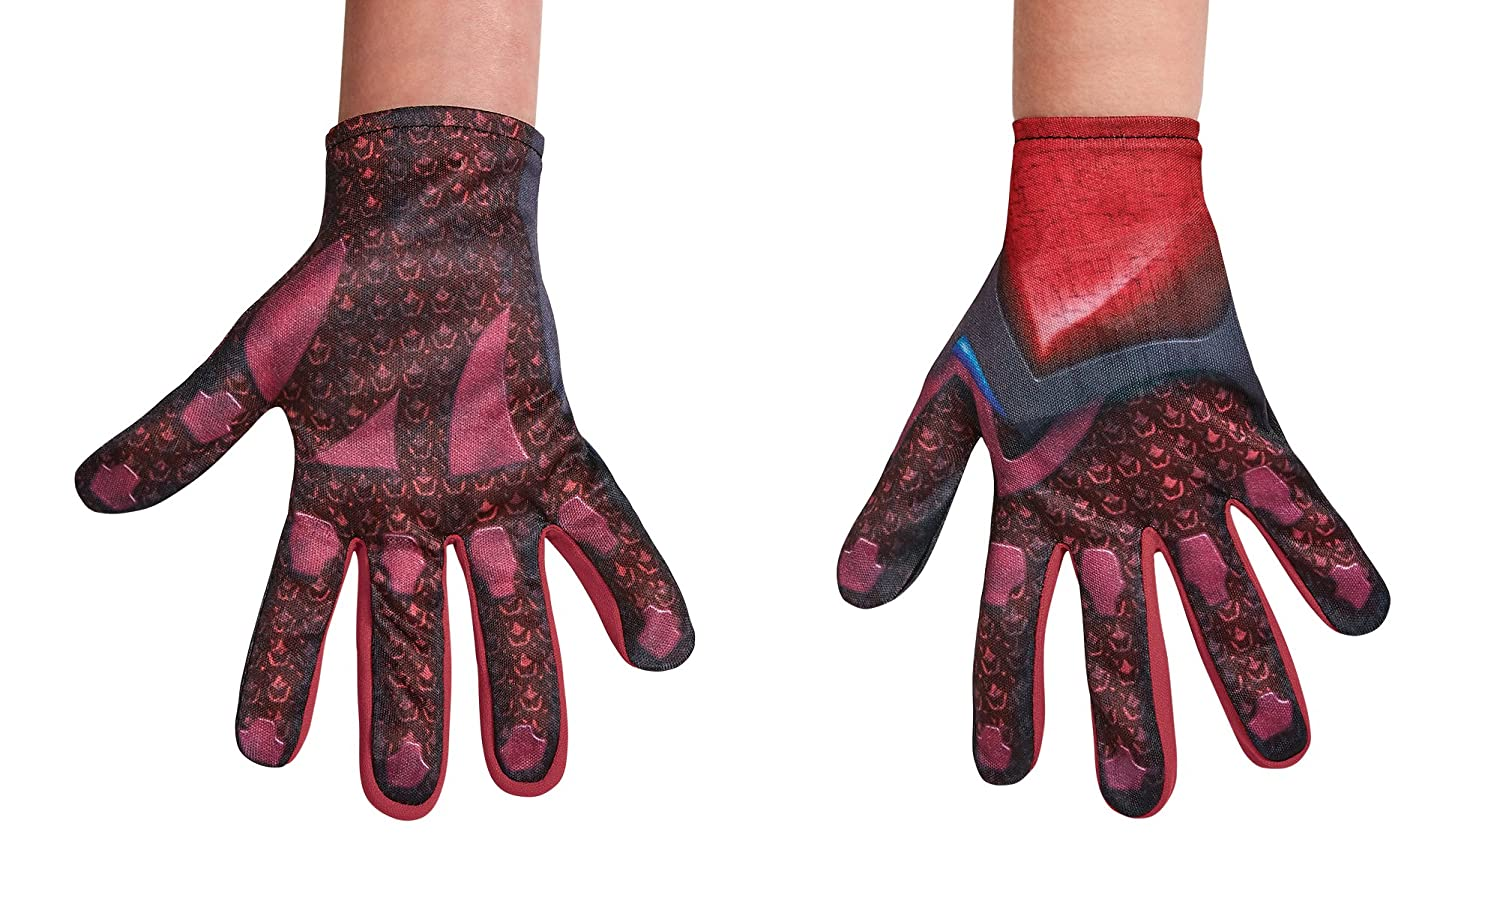 Power Rangers Movie Red Ranger Child Gloves One Size Disguise Costumes - Toys Division 19713